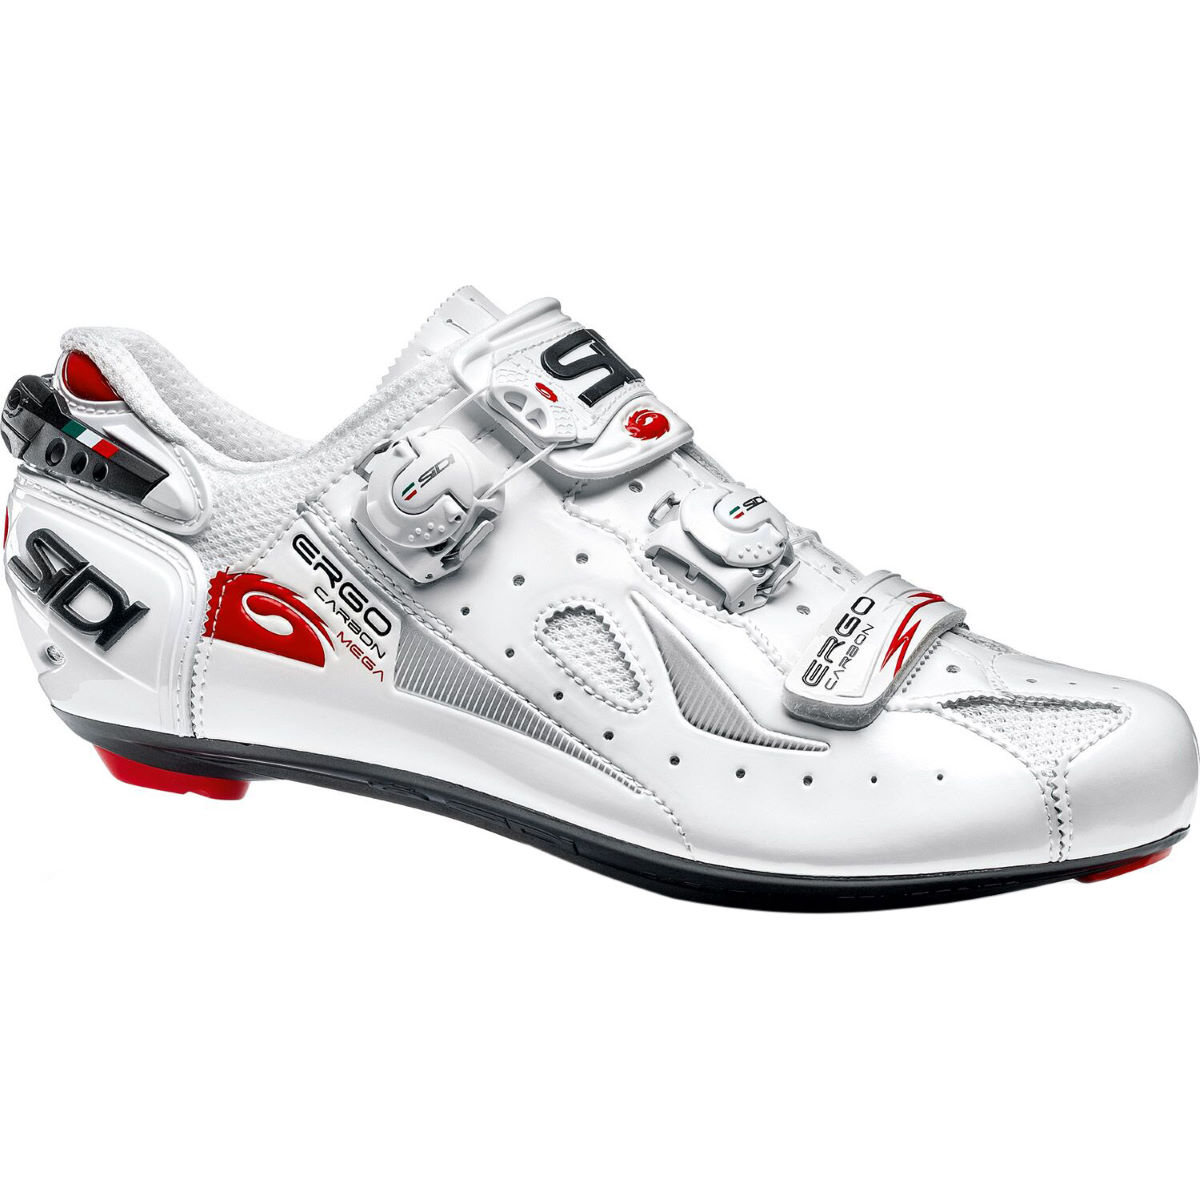 Chaussures de route Sidi Ergo 4 (carbone, coupe Mega/large) - 46